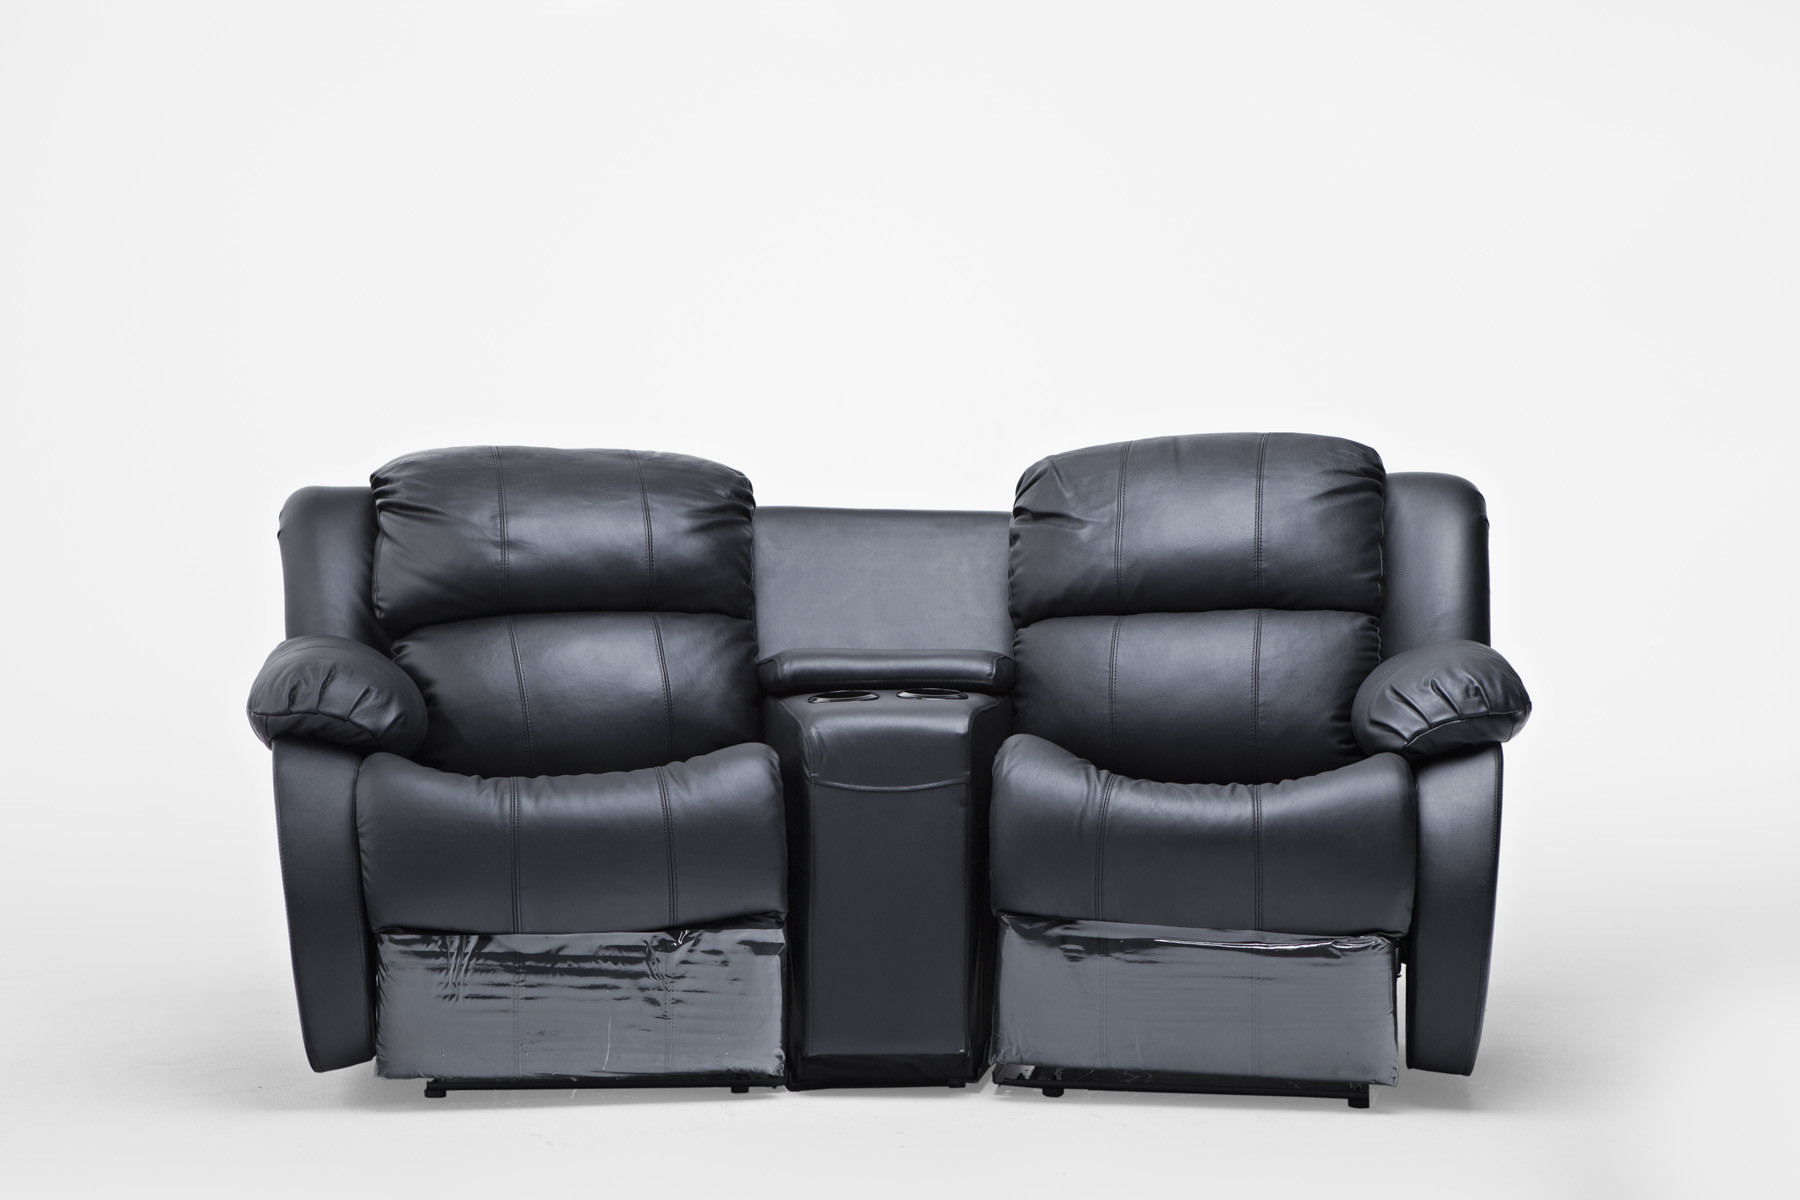 2 Seater Home Theatre Recliner Sofa